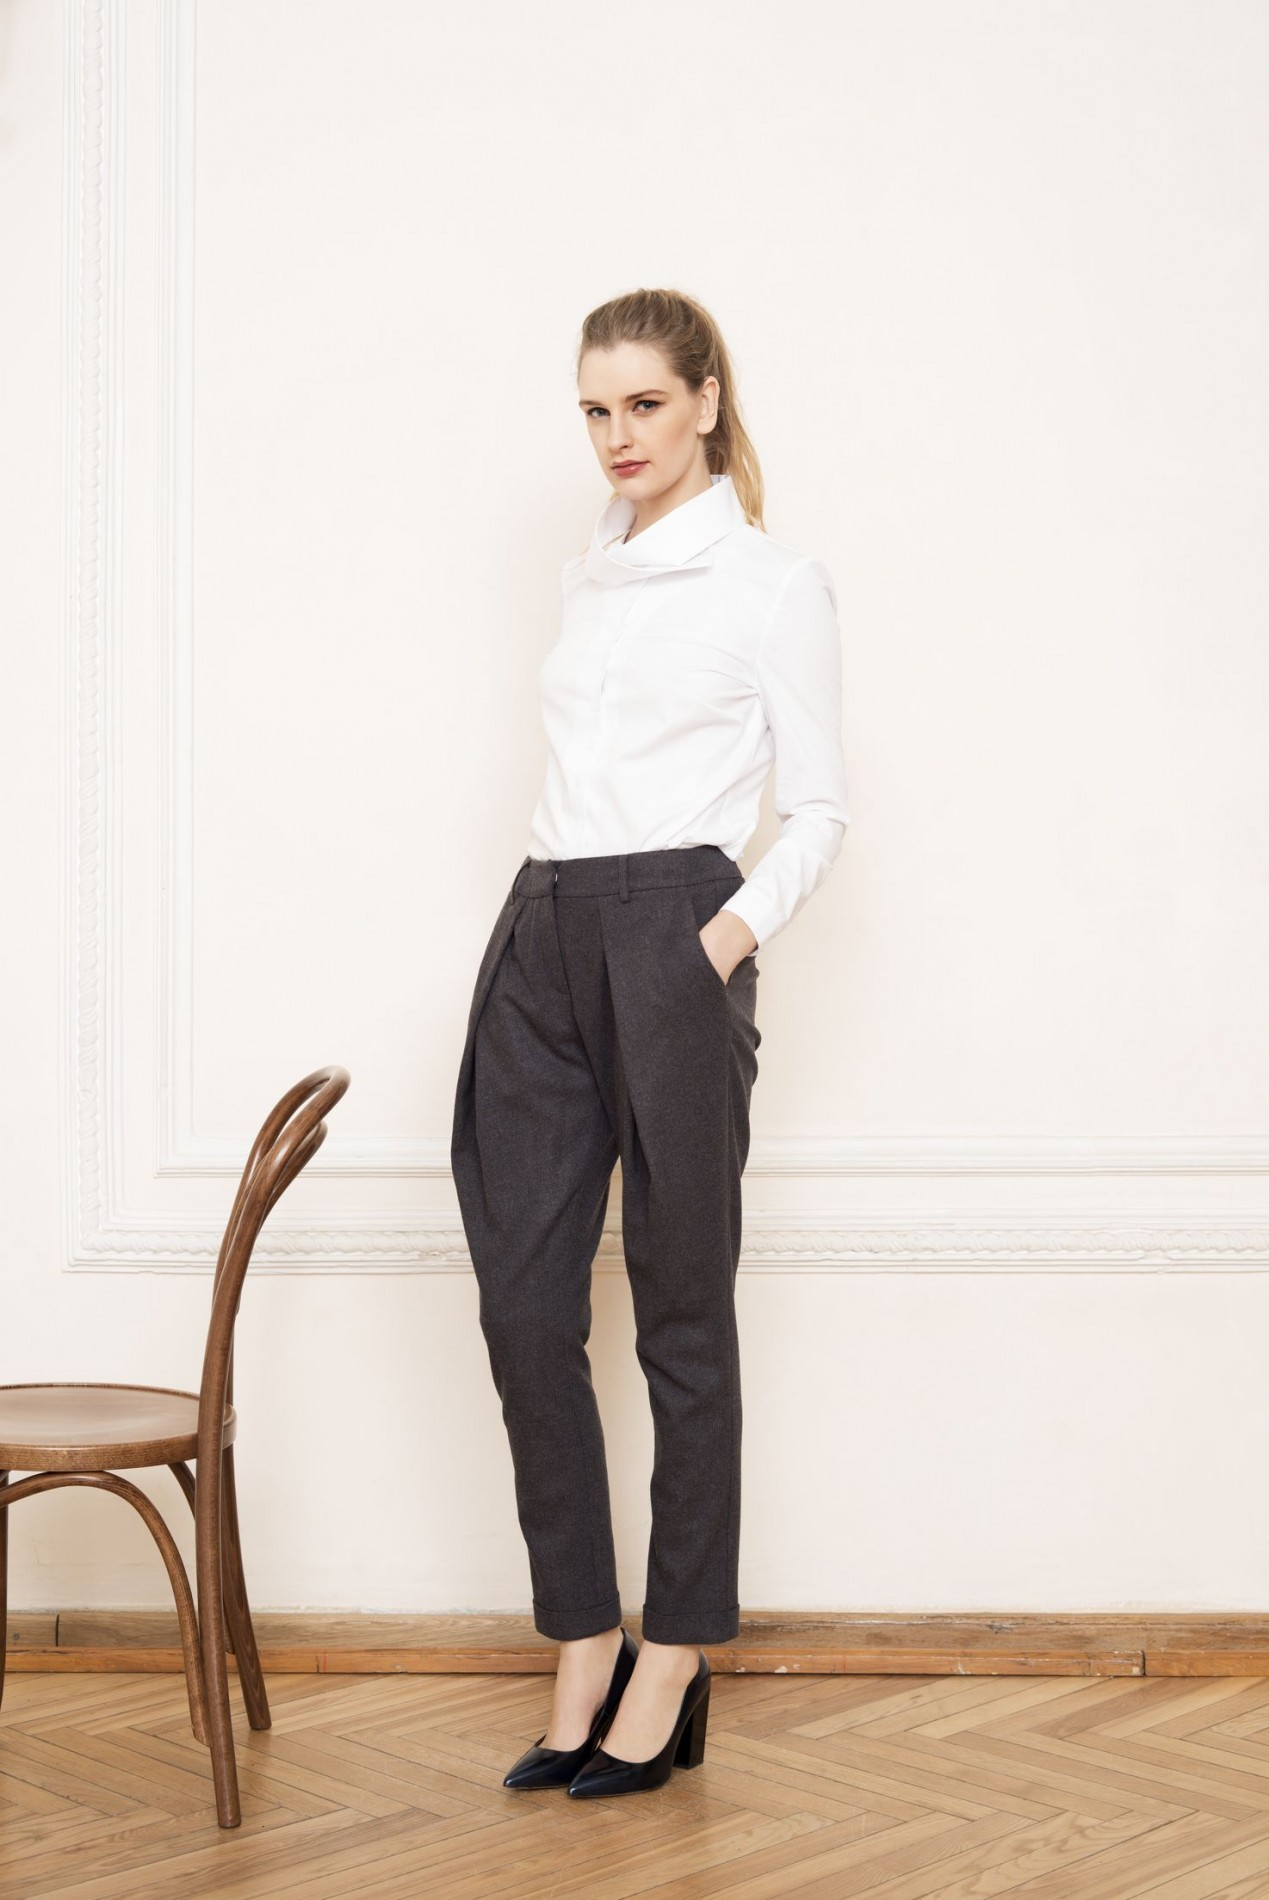 RILA High Neck Shirt and ALPS Pleat Trousers